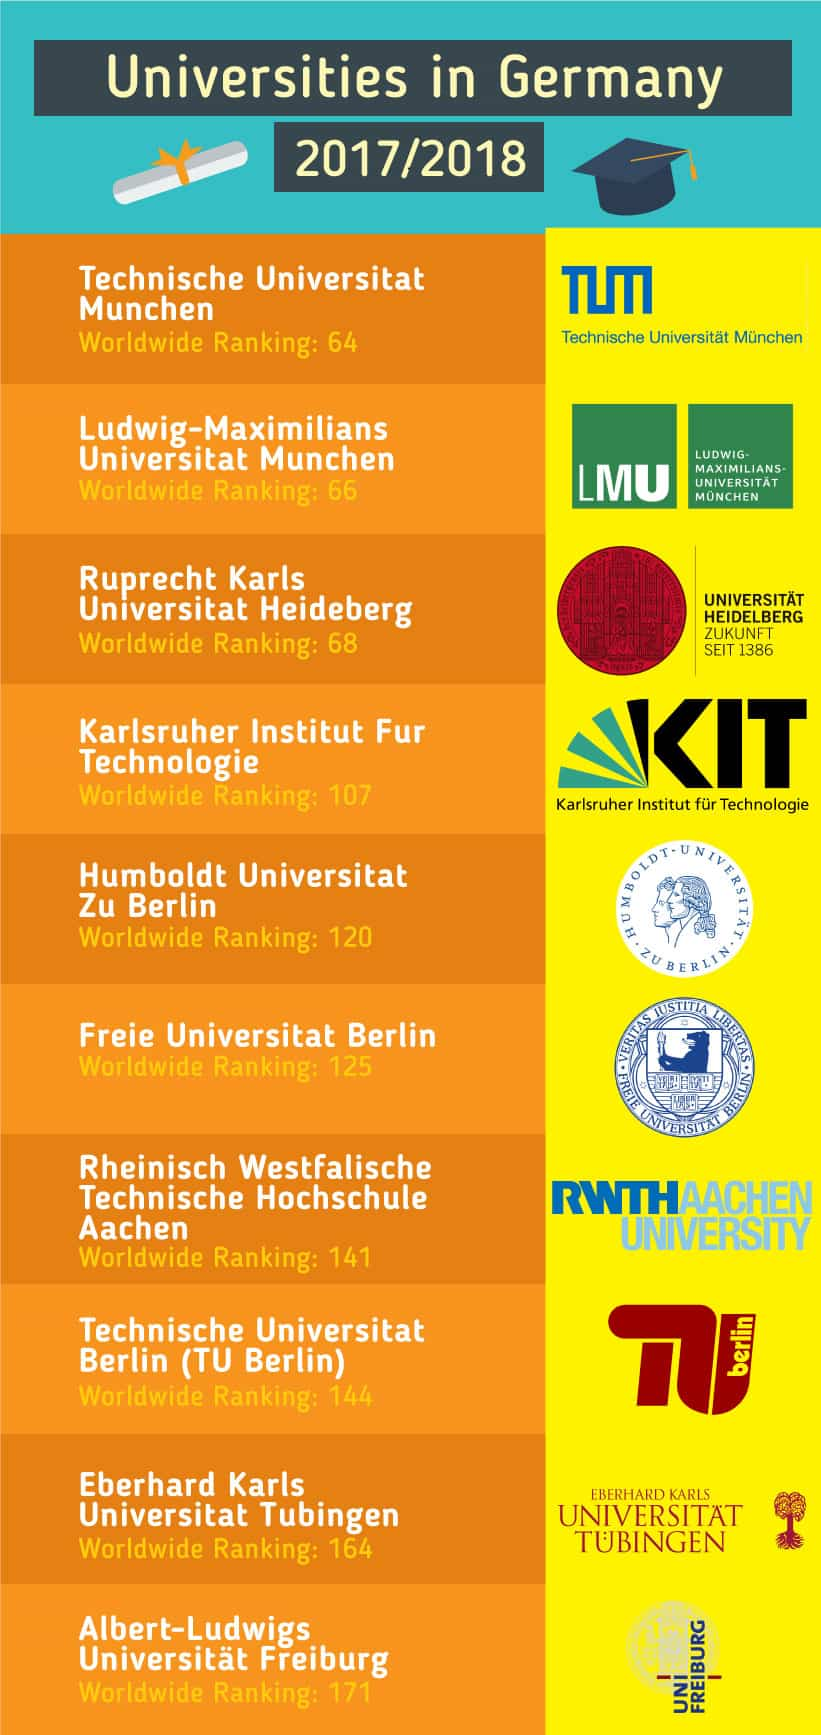 Top Universities in Germany 2017/2018